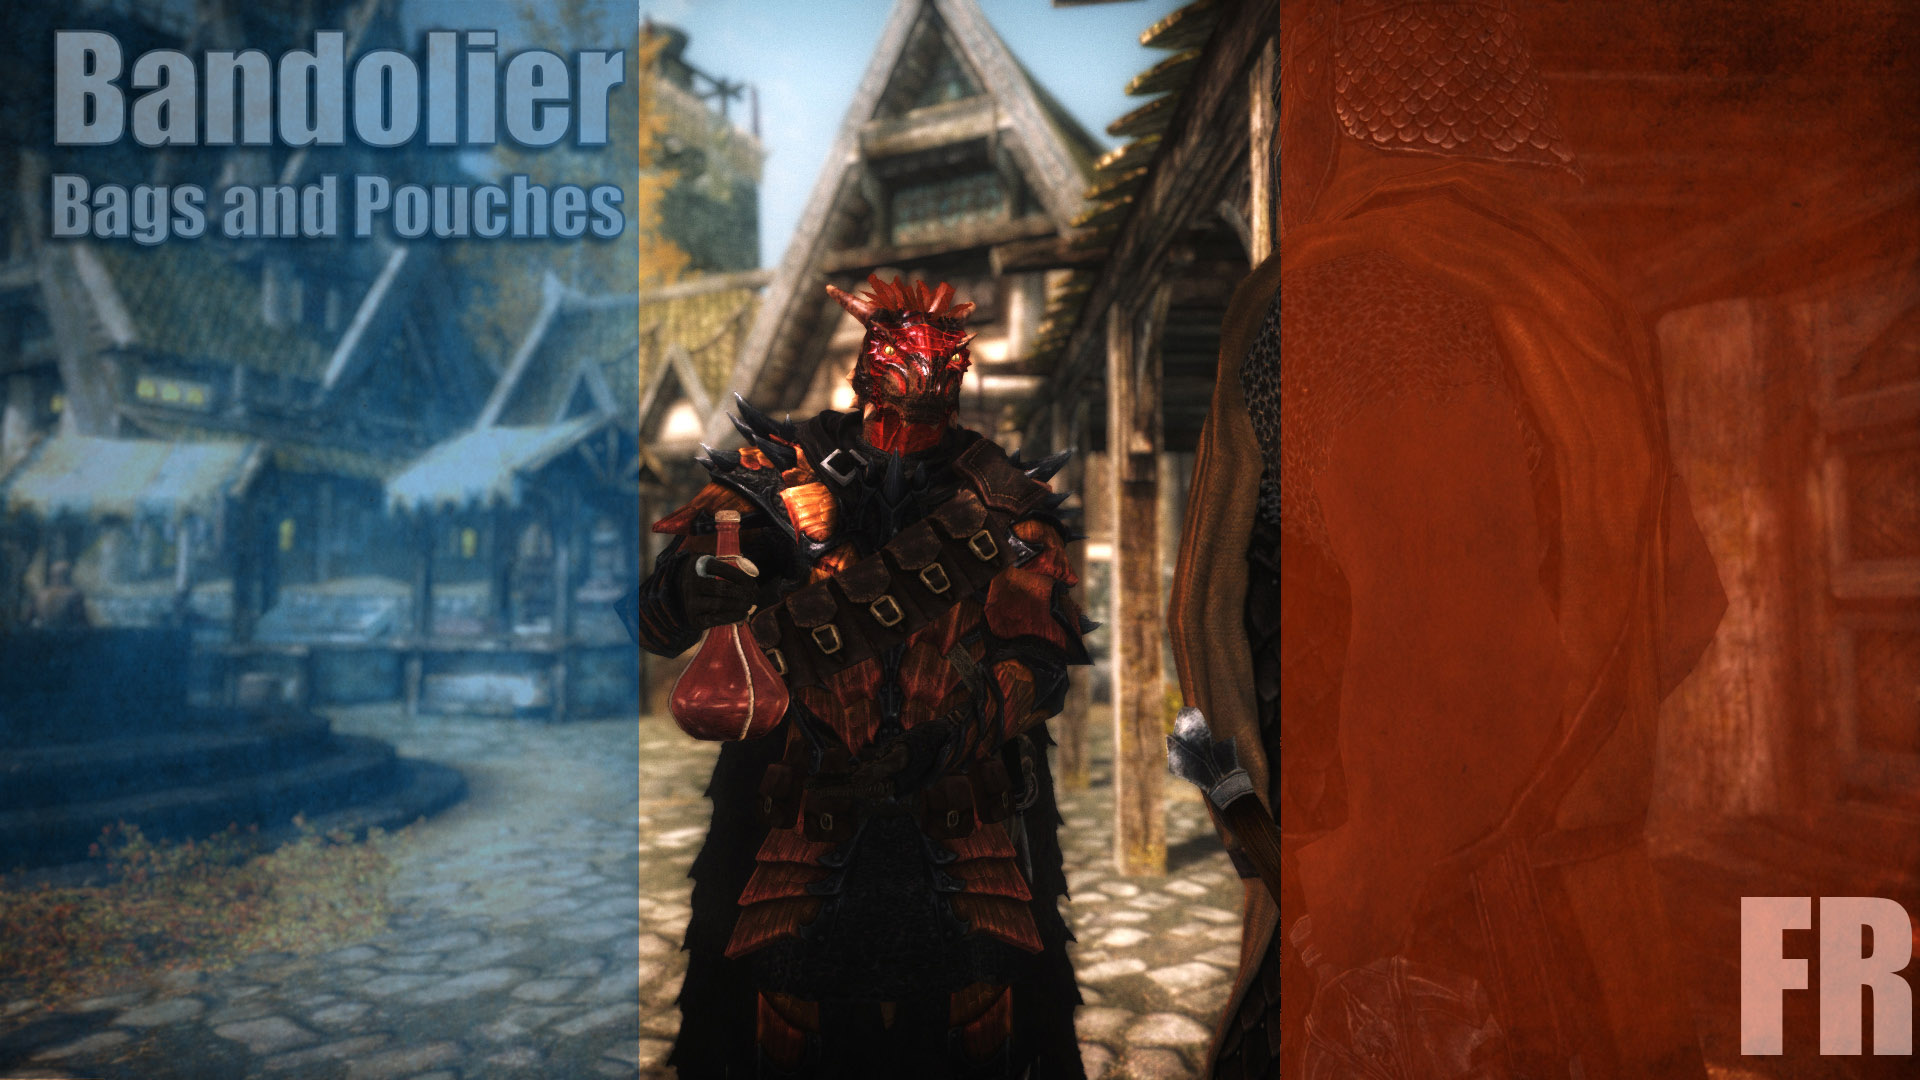 Bandolier Bags and Pouches Classic traduction francaise complete at Skyrim Special Edition Nexus - Mods and Community